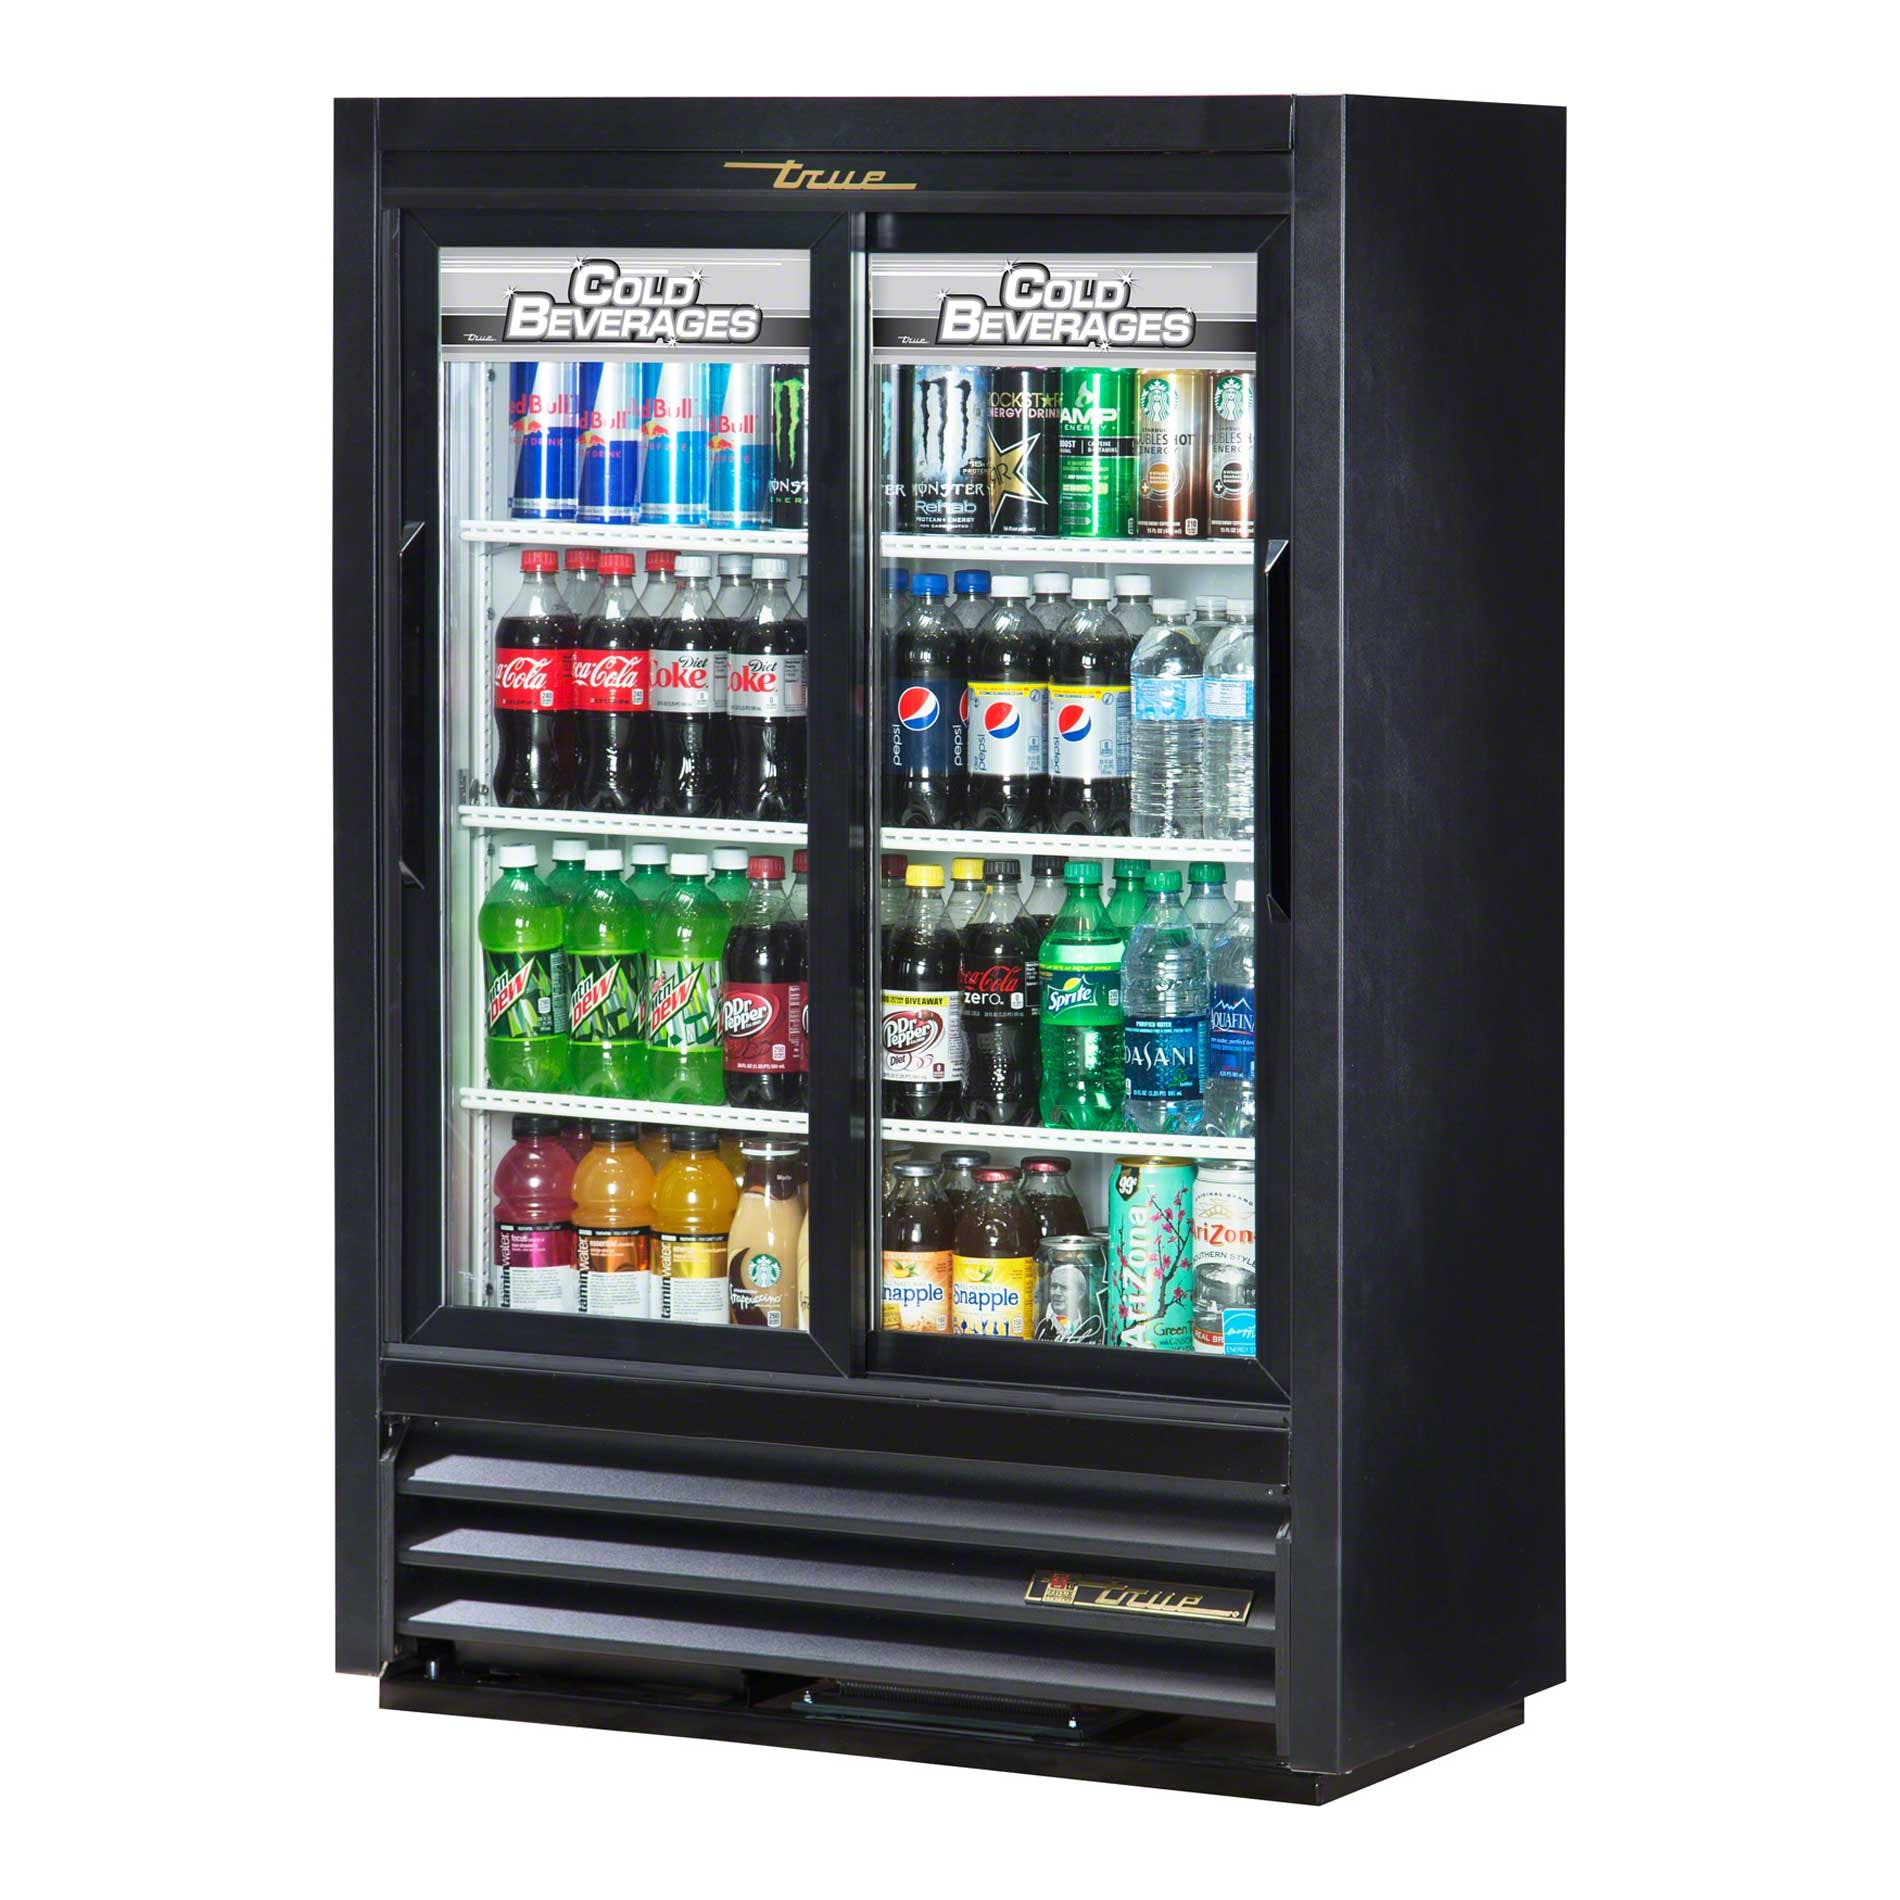 "True - GDM-33SSL-54-LD 36"" Convenience Store Glass Door Merchandiser Refrigerator LED Commercial refrigerator sold by Food Service Warehouse"